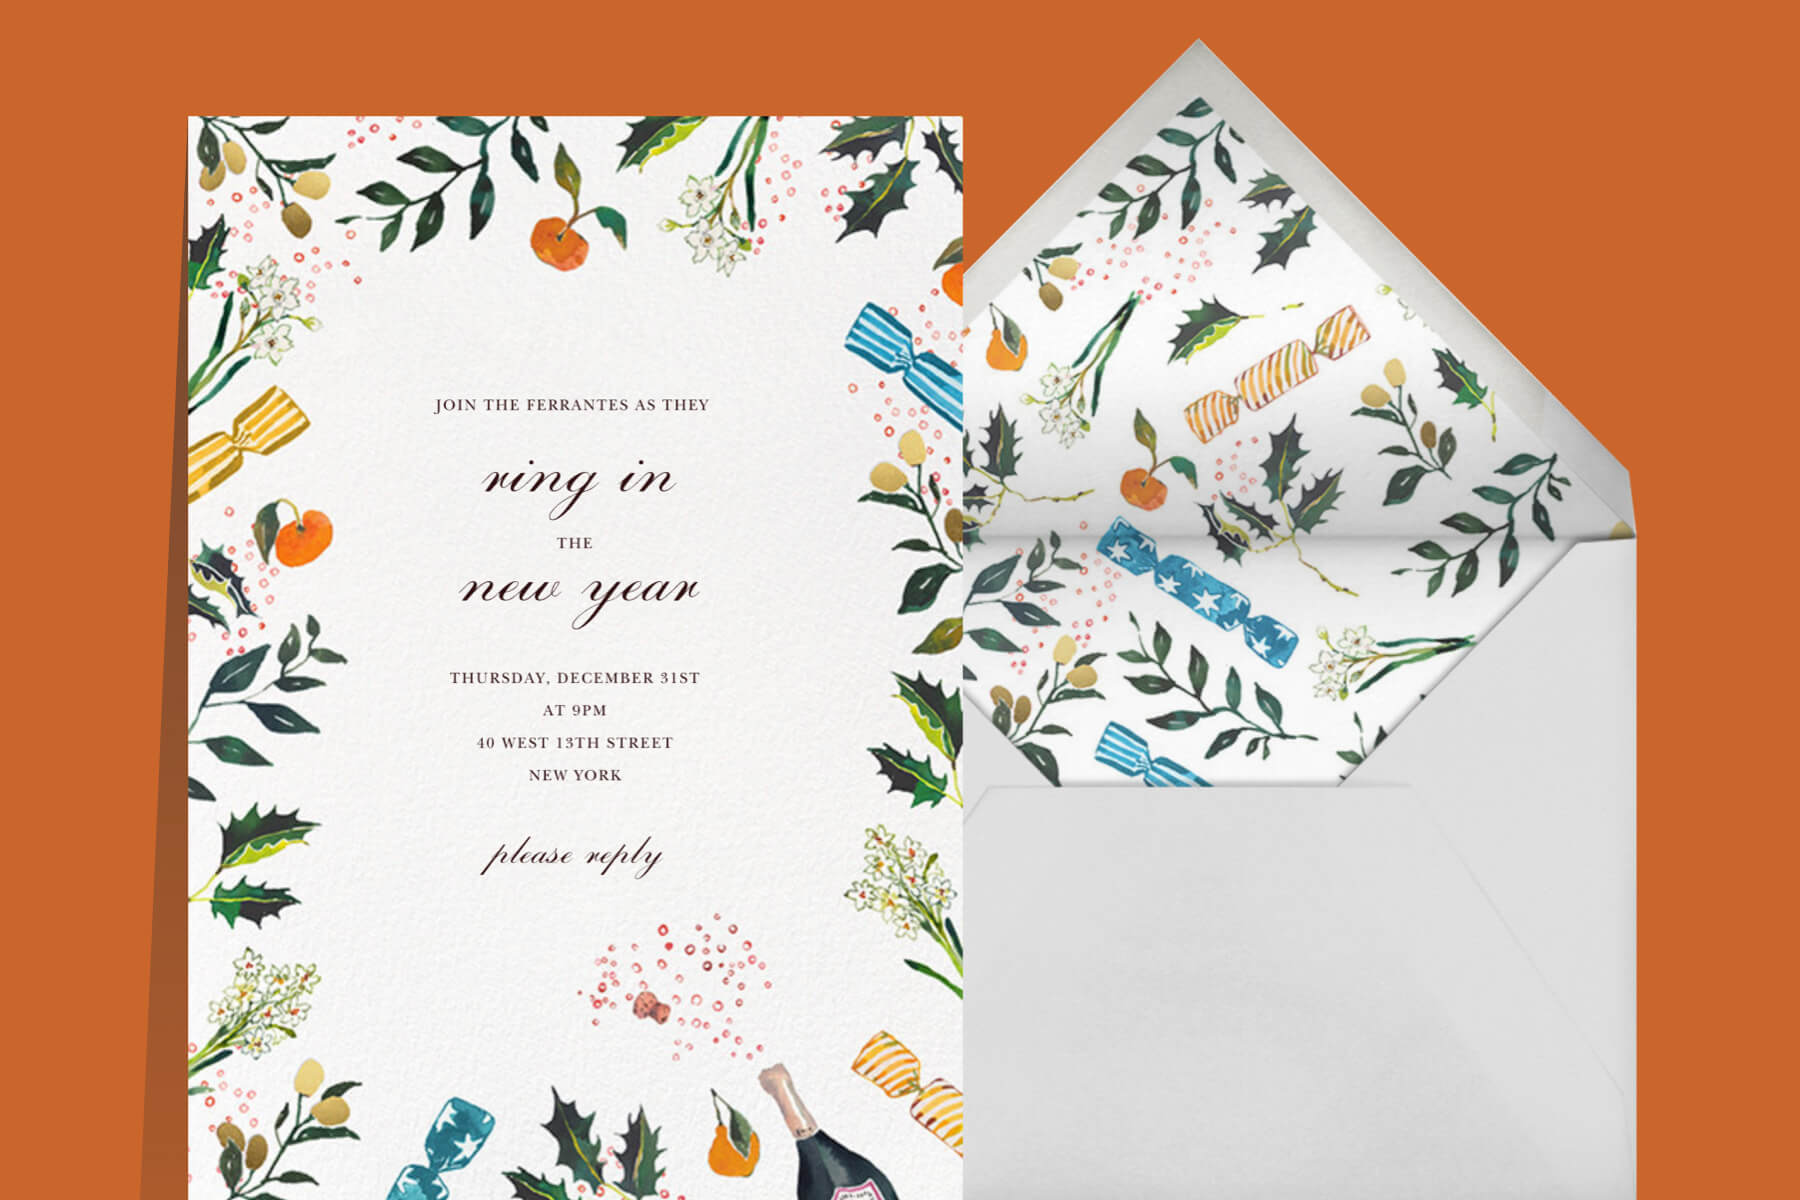 New Year's dinner invitation with holly, citrus, Champagne